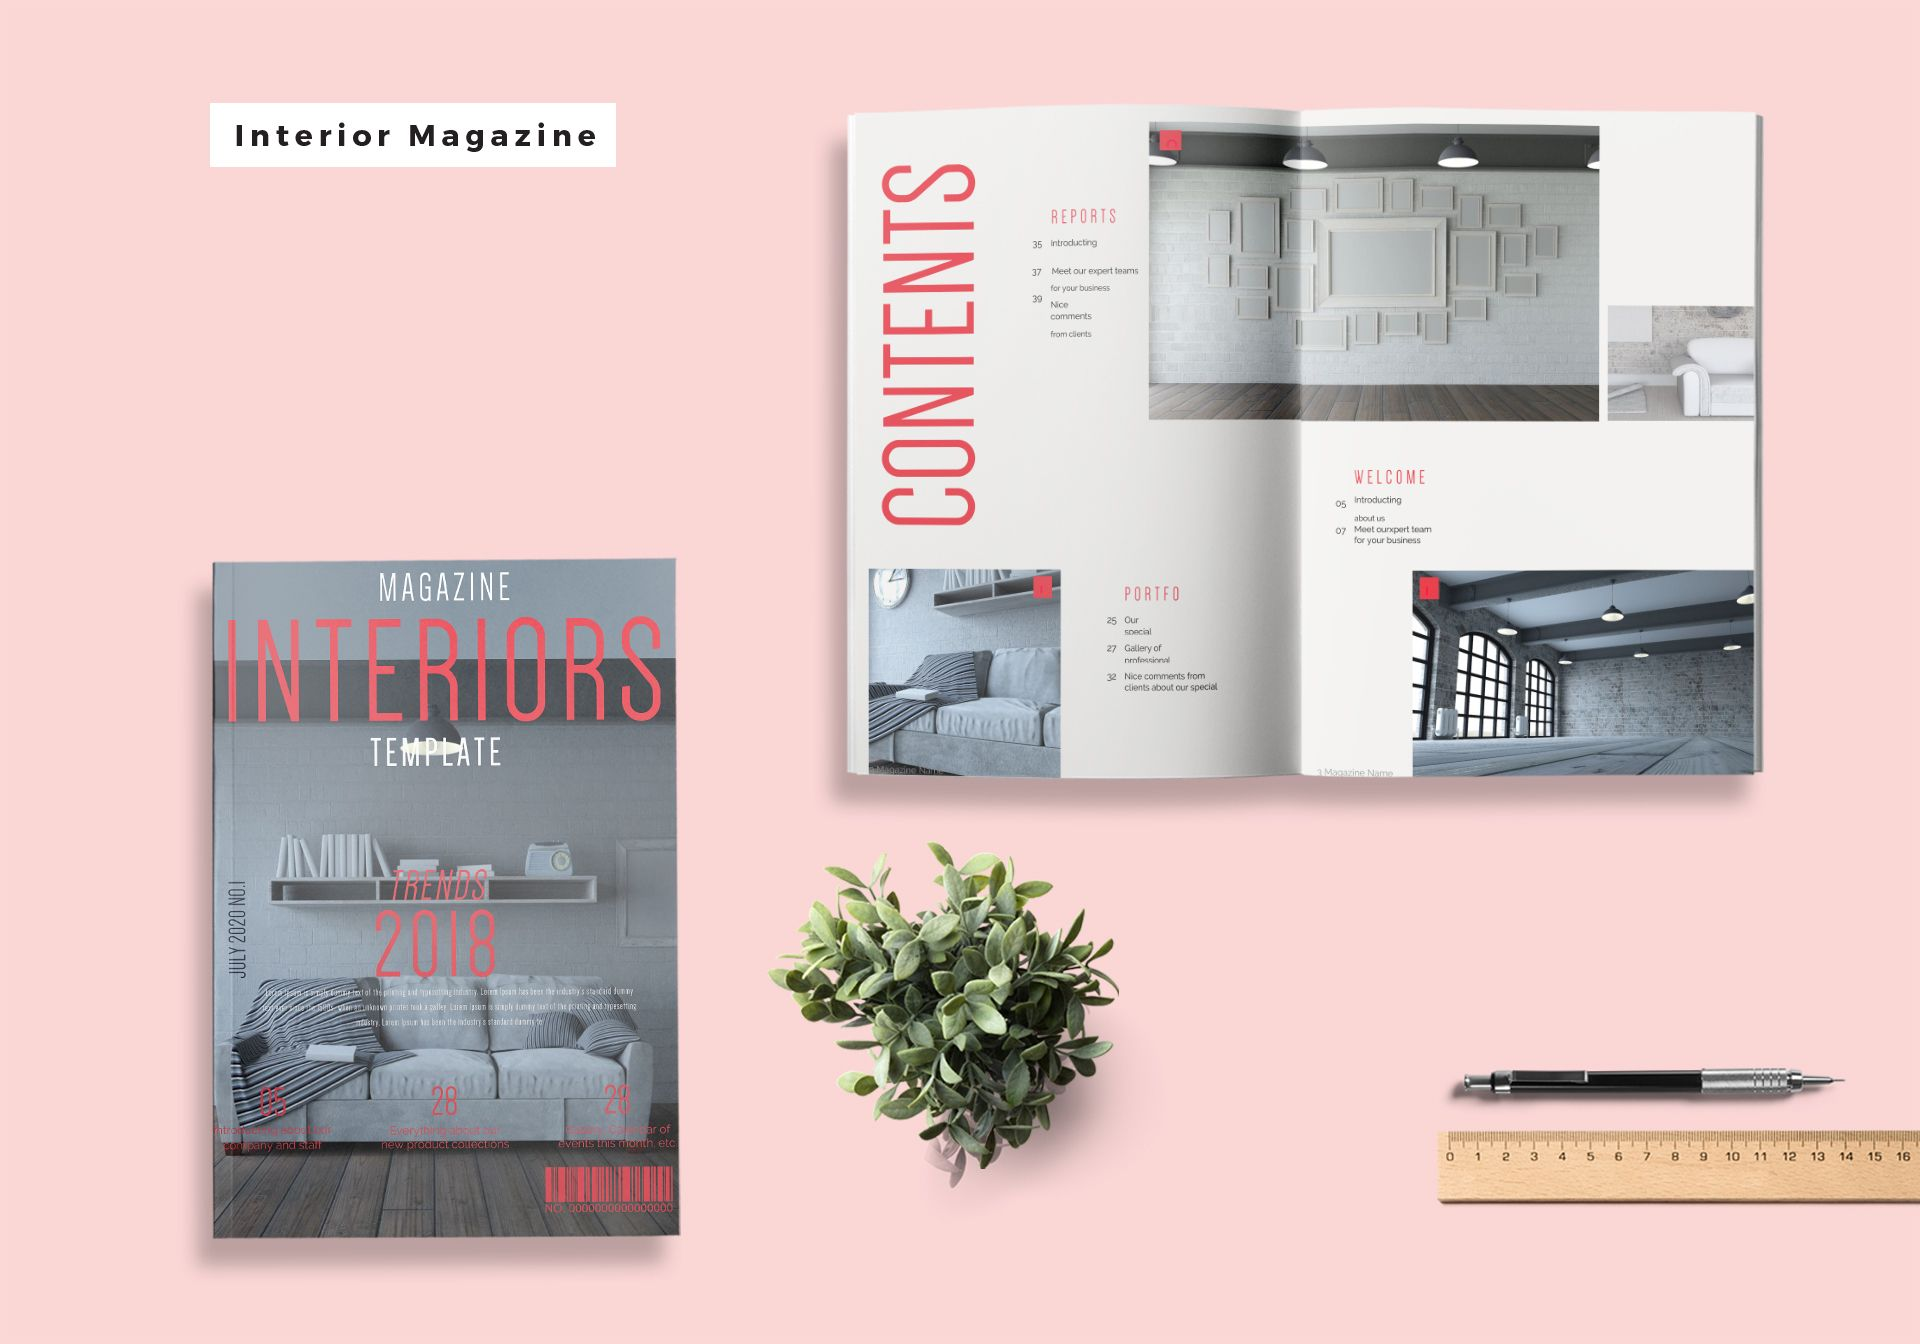 Interior Magazine Template in Word, Publisher, InDesign